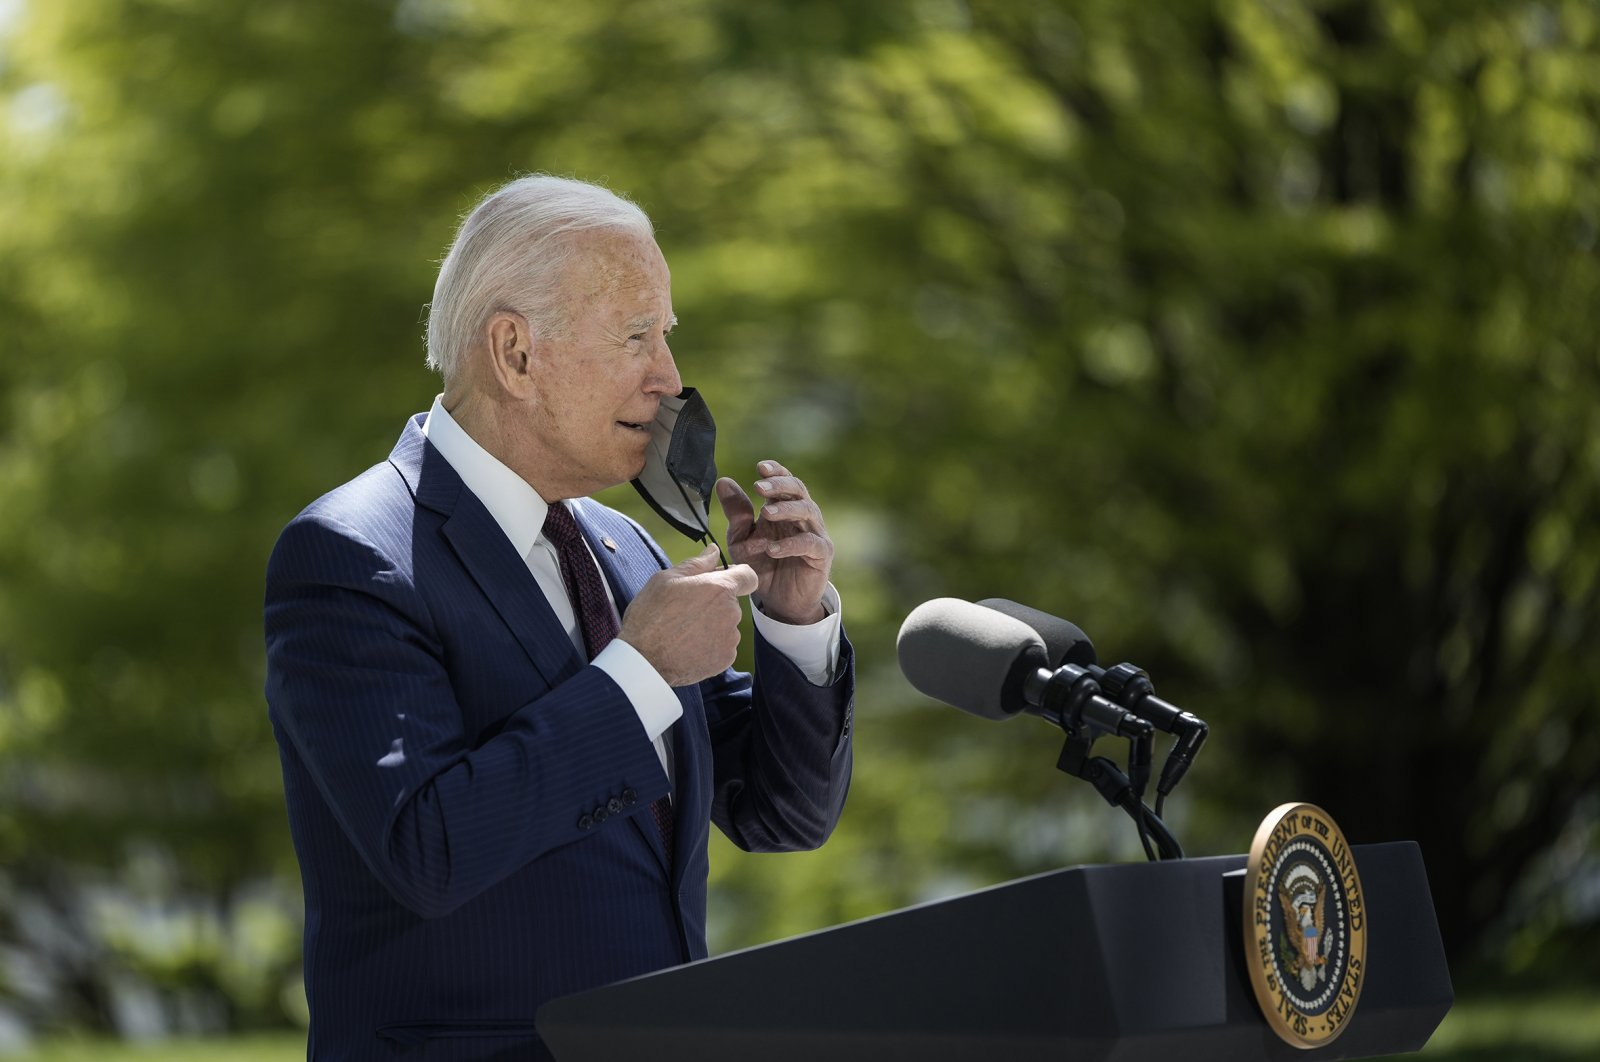 U.S. President Joe Biden removes his mask before speaking about the updated Centers for Disease Control and Prevention (CDC) mask guidance, Washington, D.C., U.S., April 27, 2021. (Photo by Getty Images)